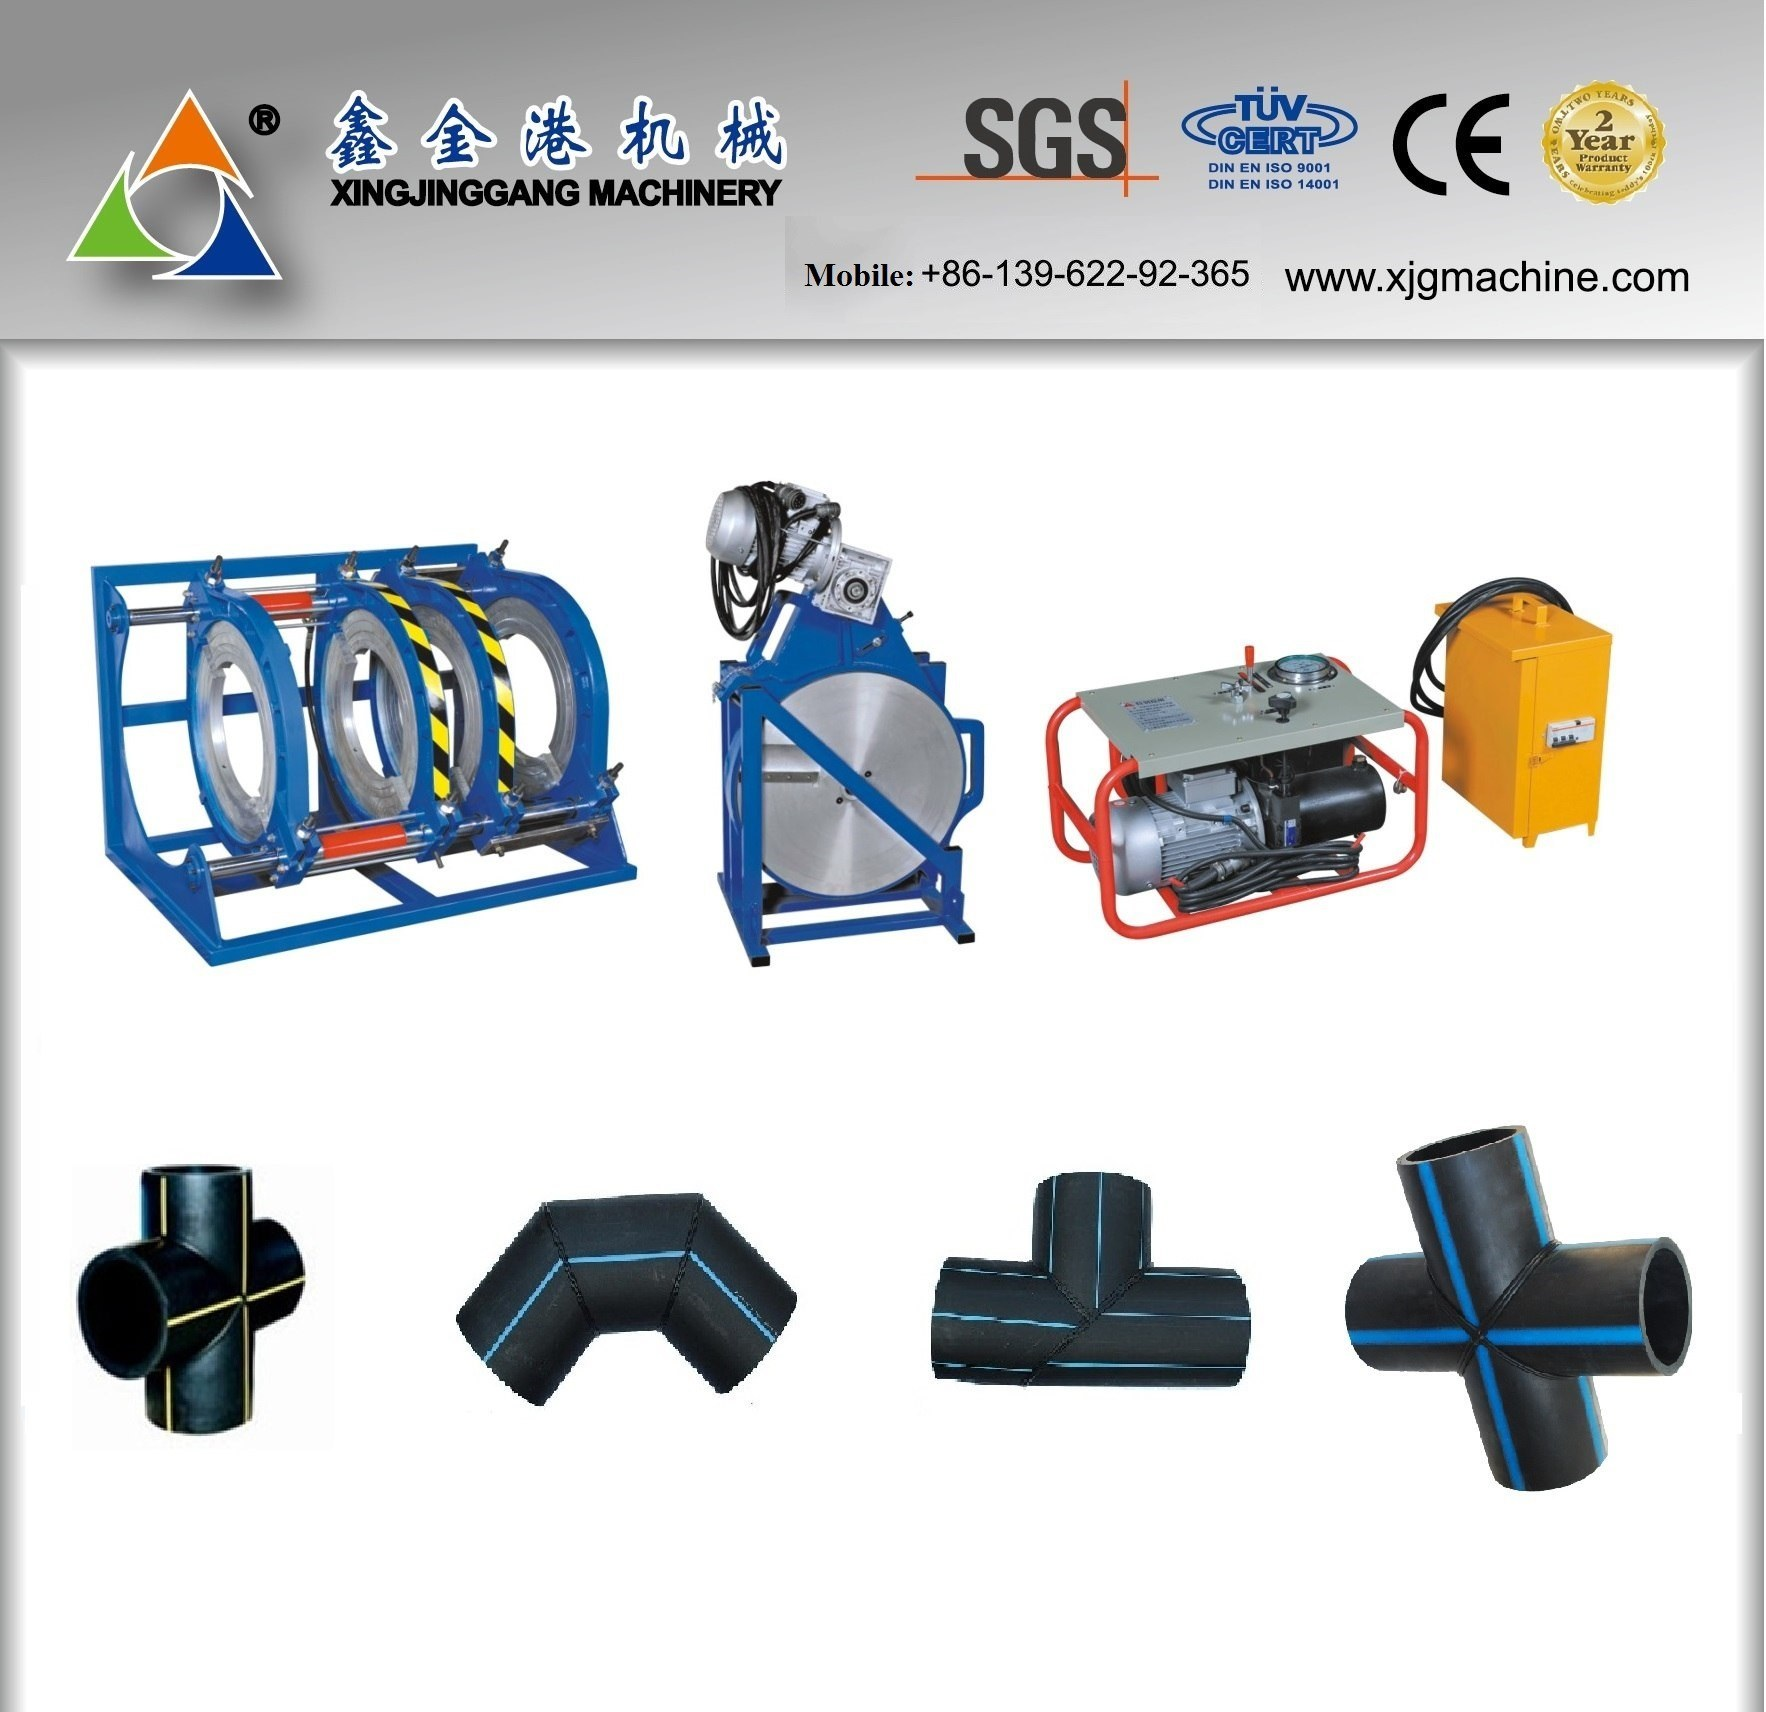 HDPE Pipe Butt Fusion Machine/HDPE Pipe Butt Welding Machine/ HDPE Pipe Fitting Welding Machine/Butt Welding Machine